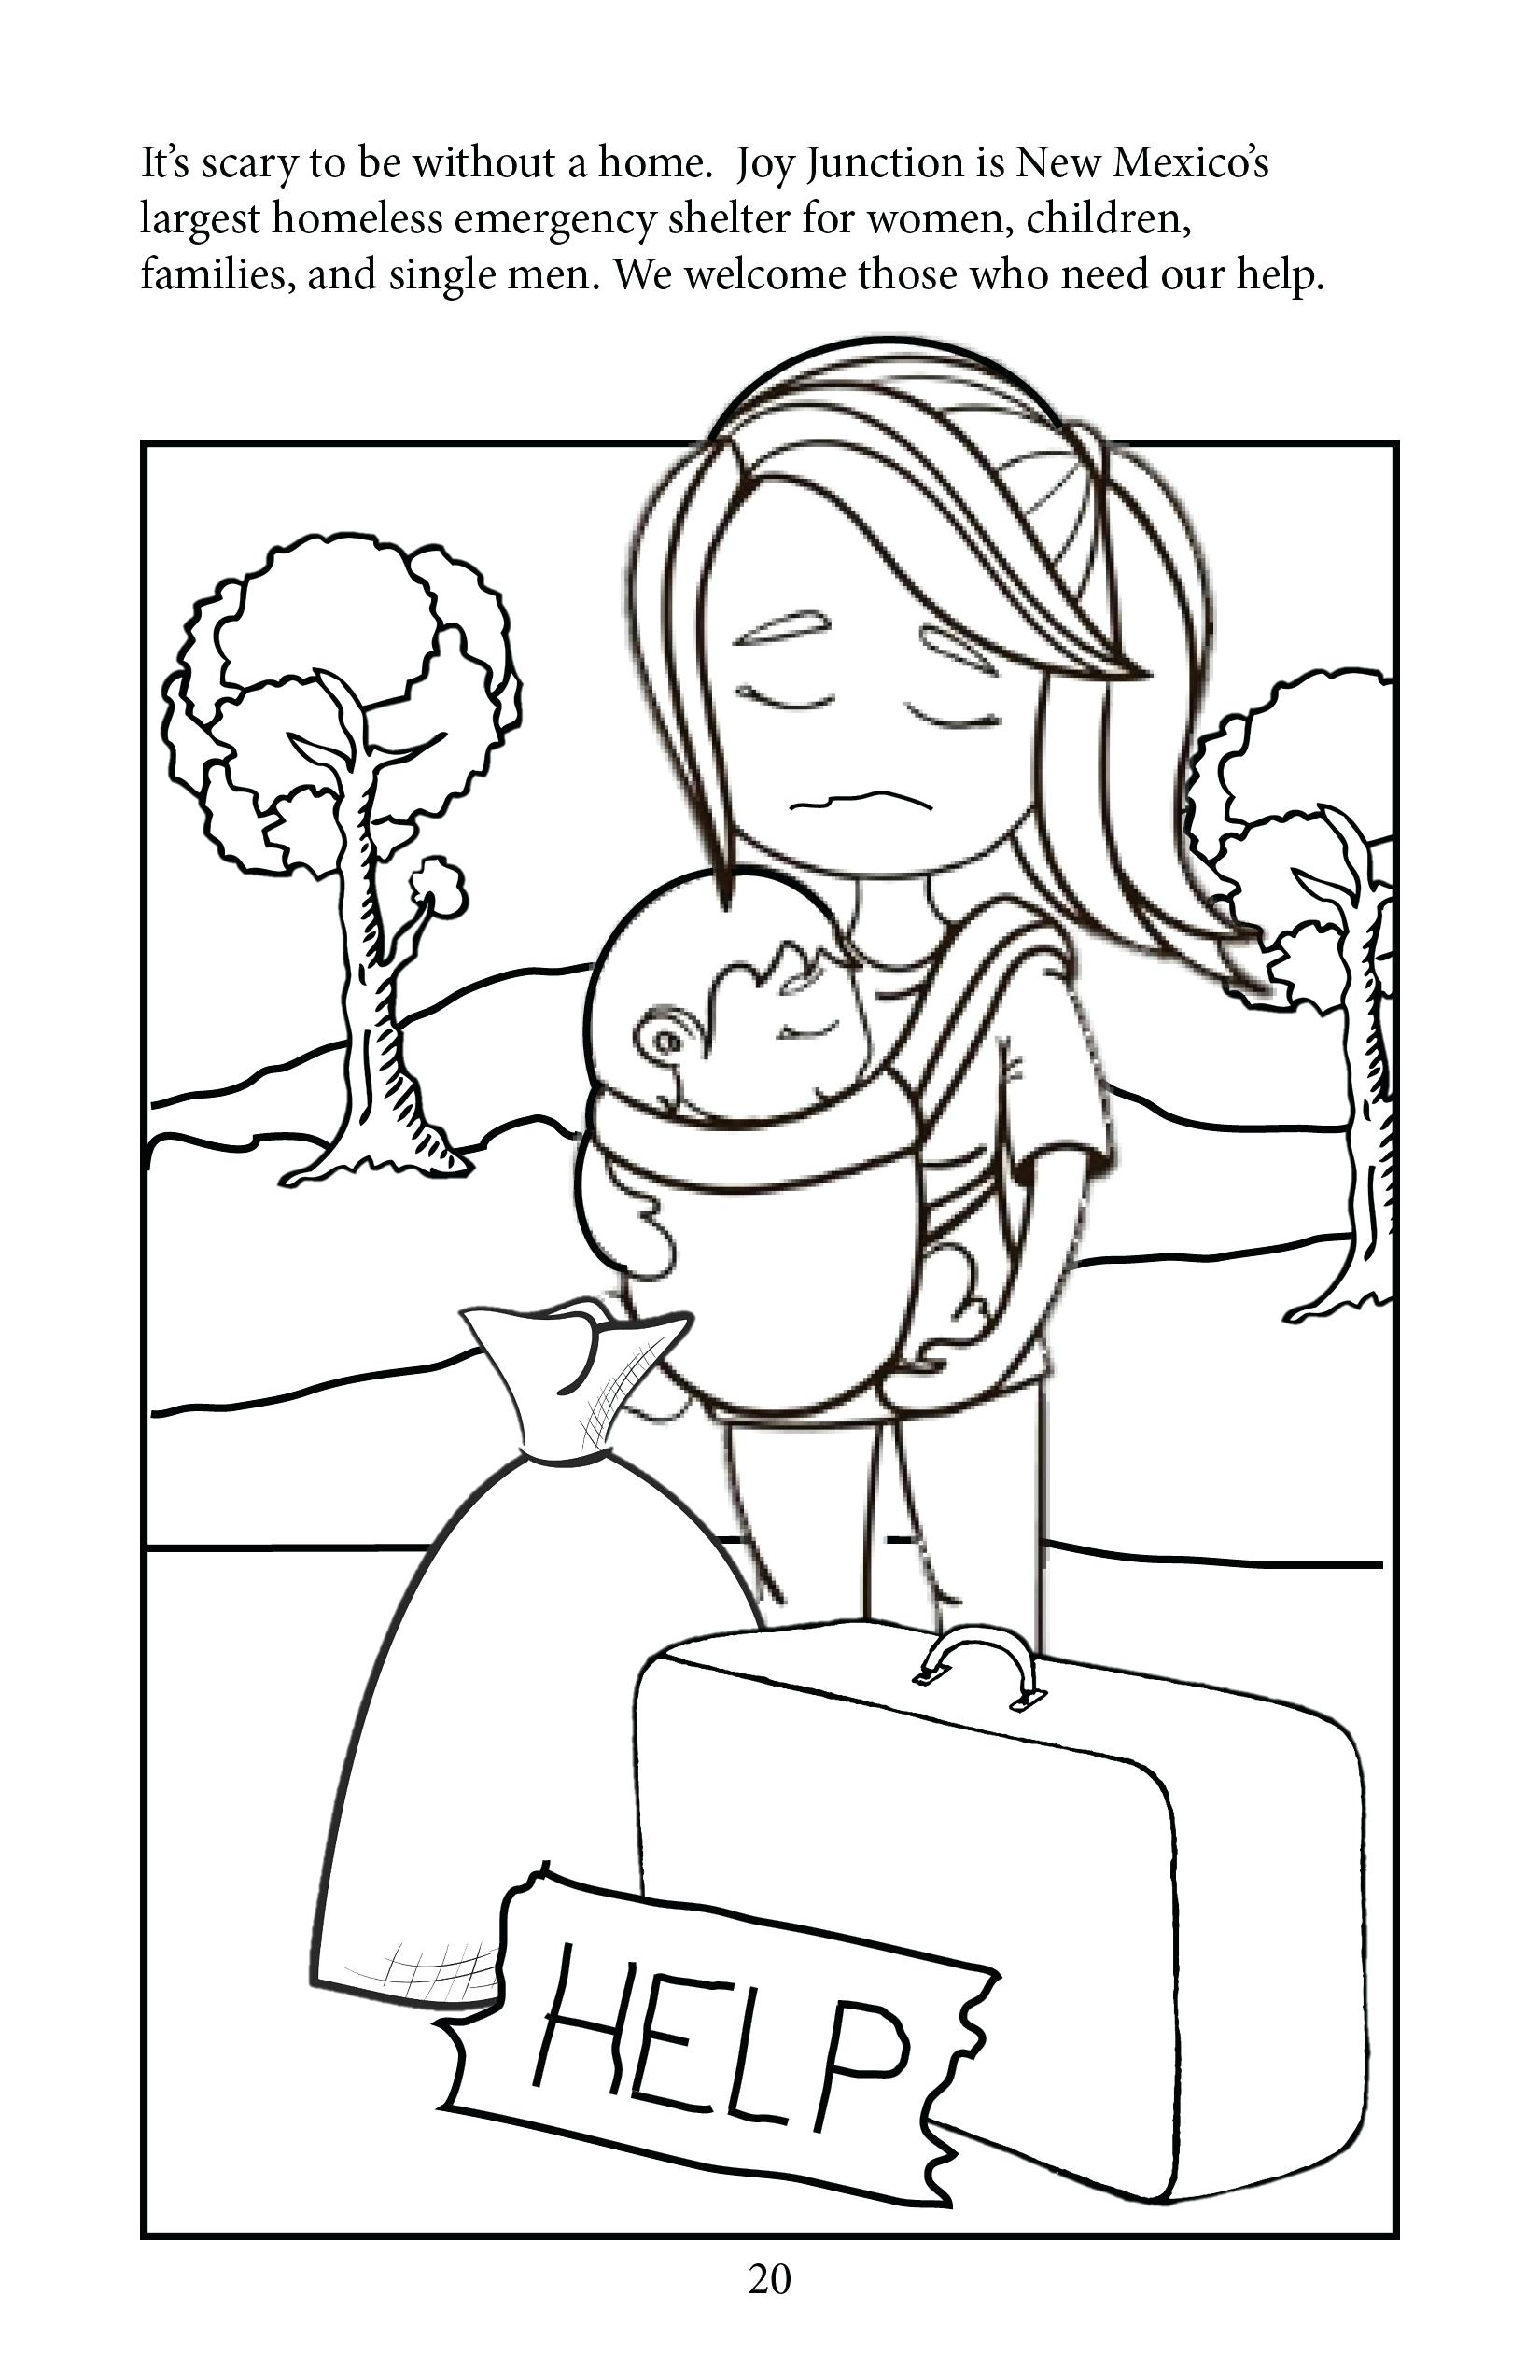 Comic Strip Coloring Pages At Getcolorings